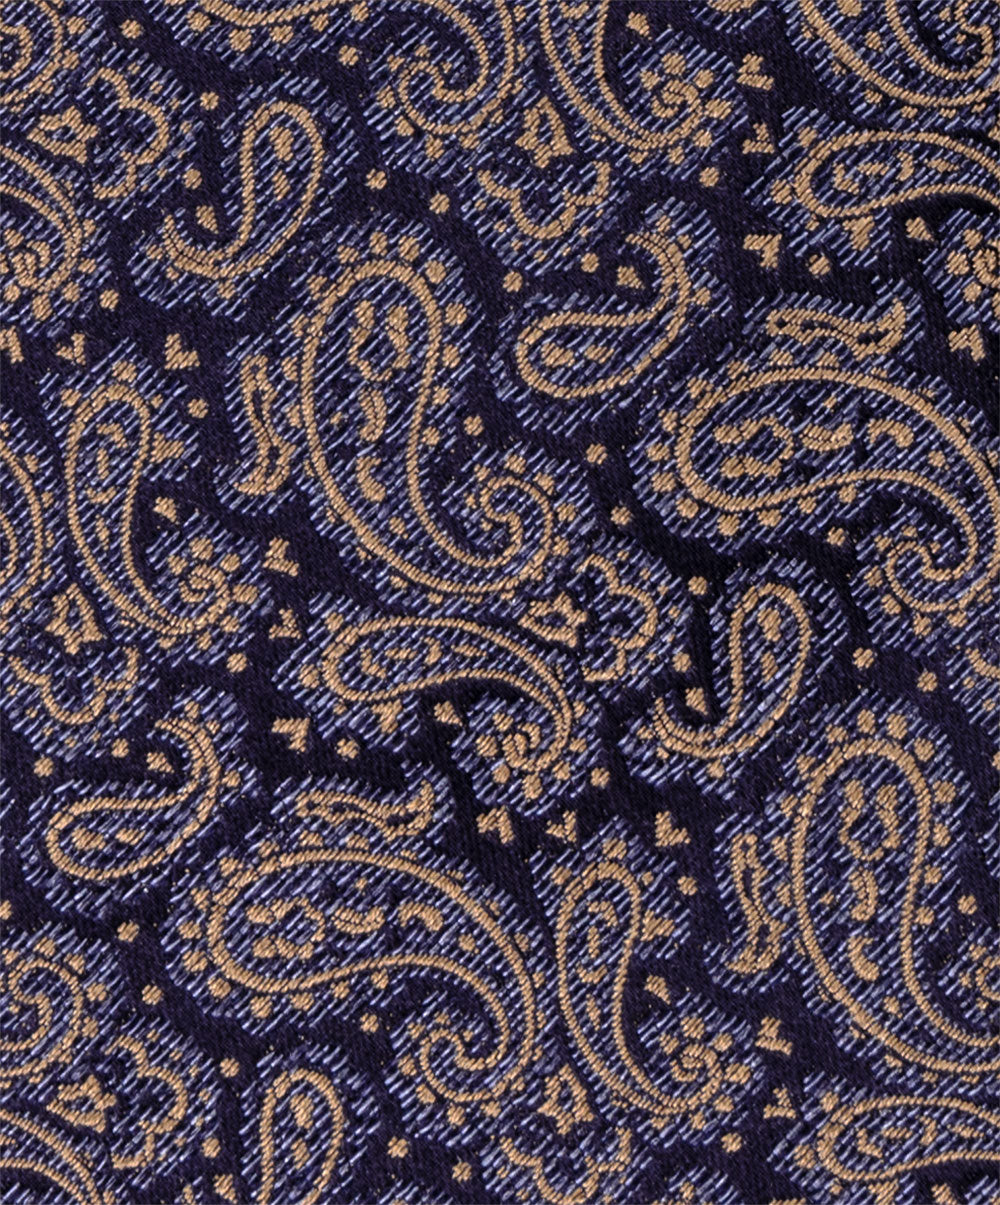 6824 1 Navy/Gold Paisley 8cm